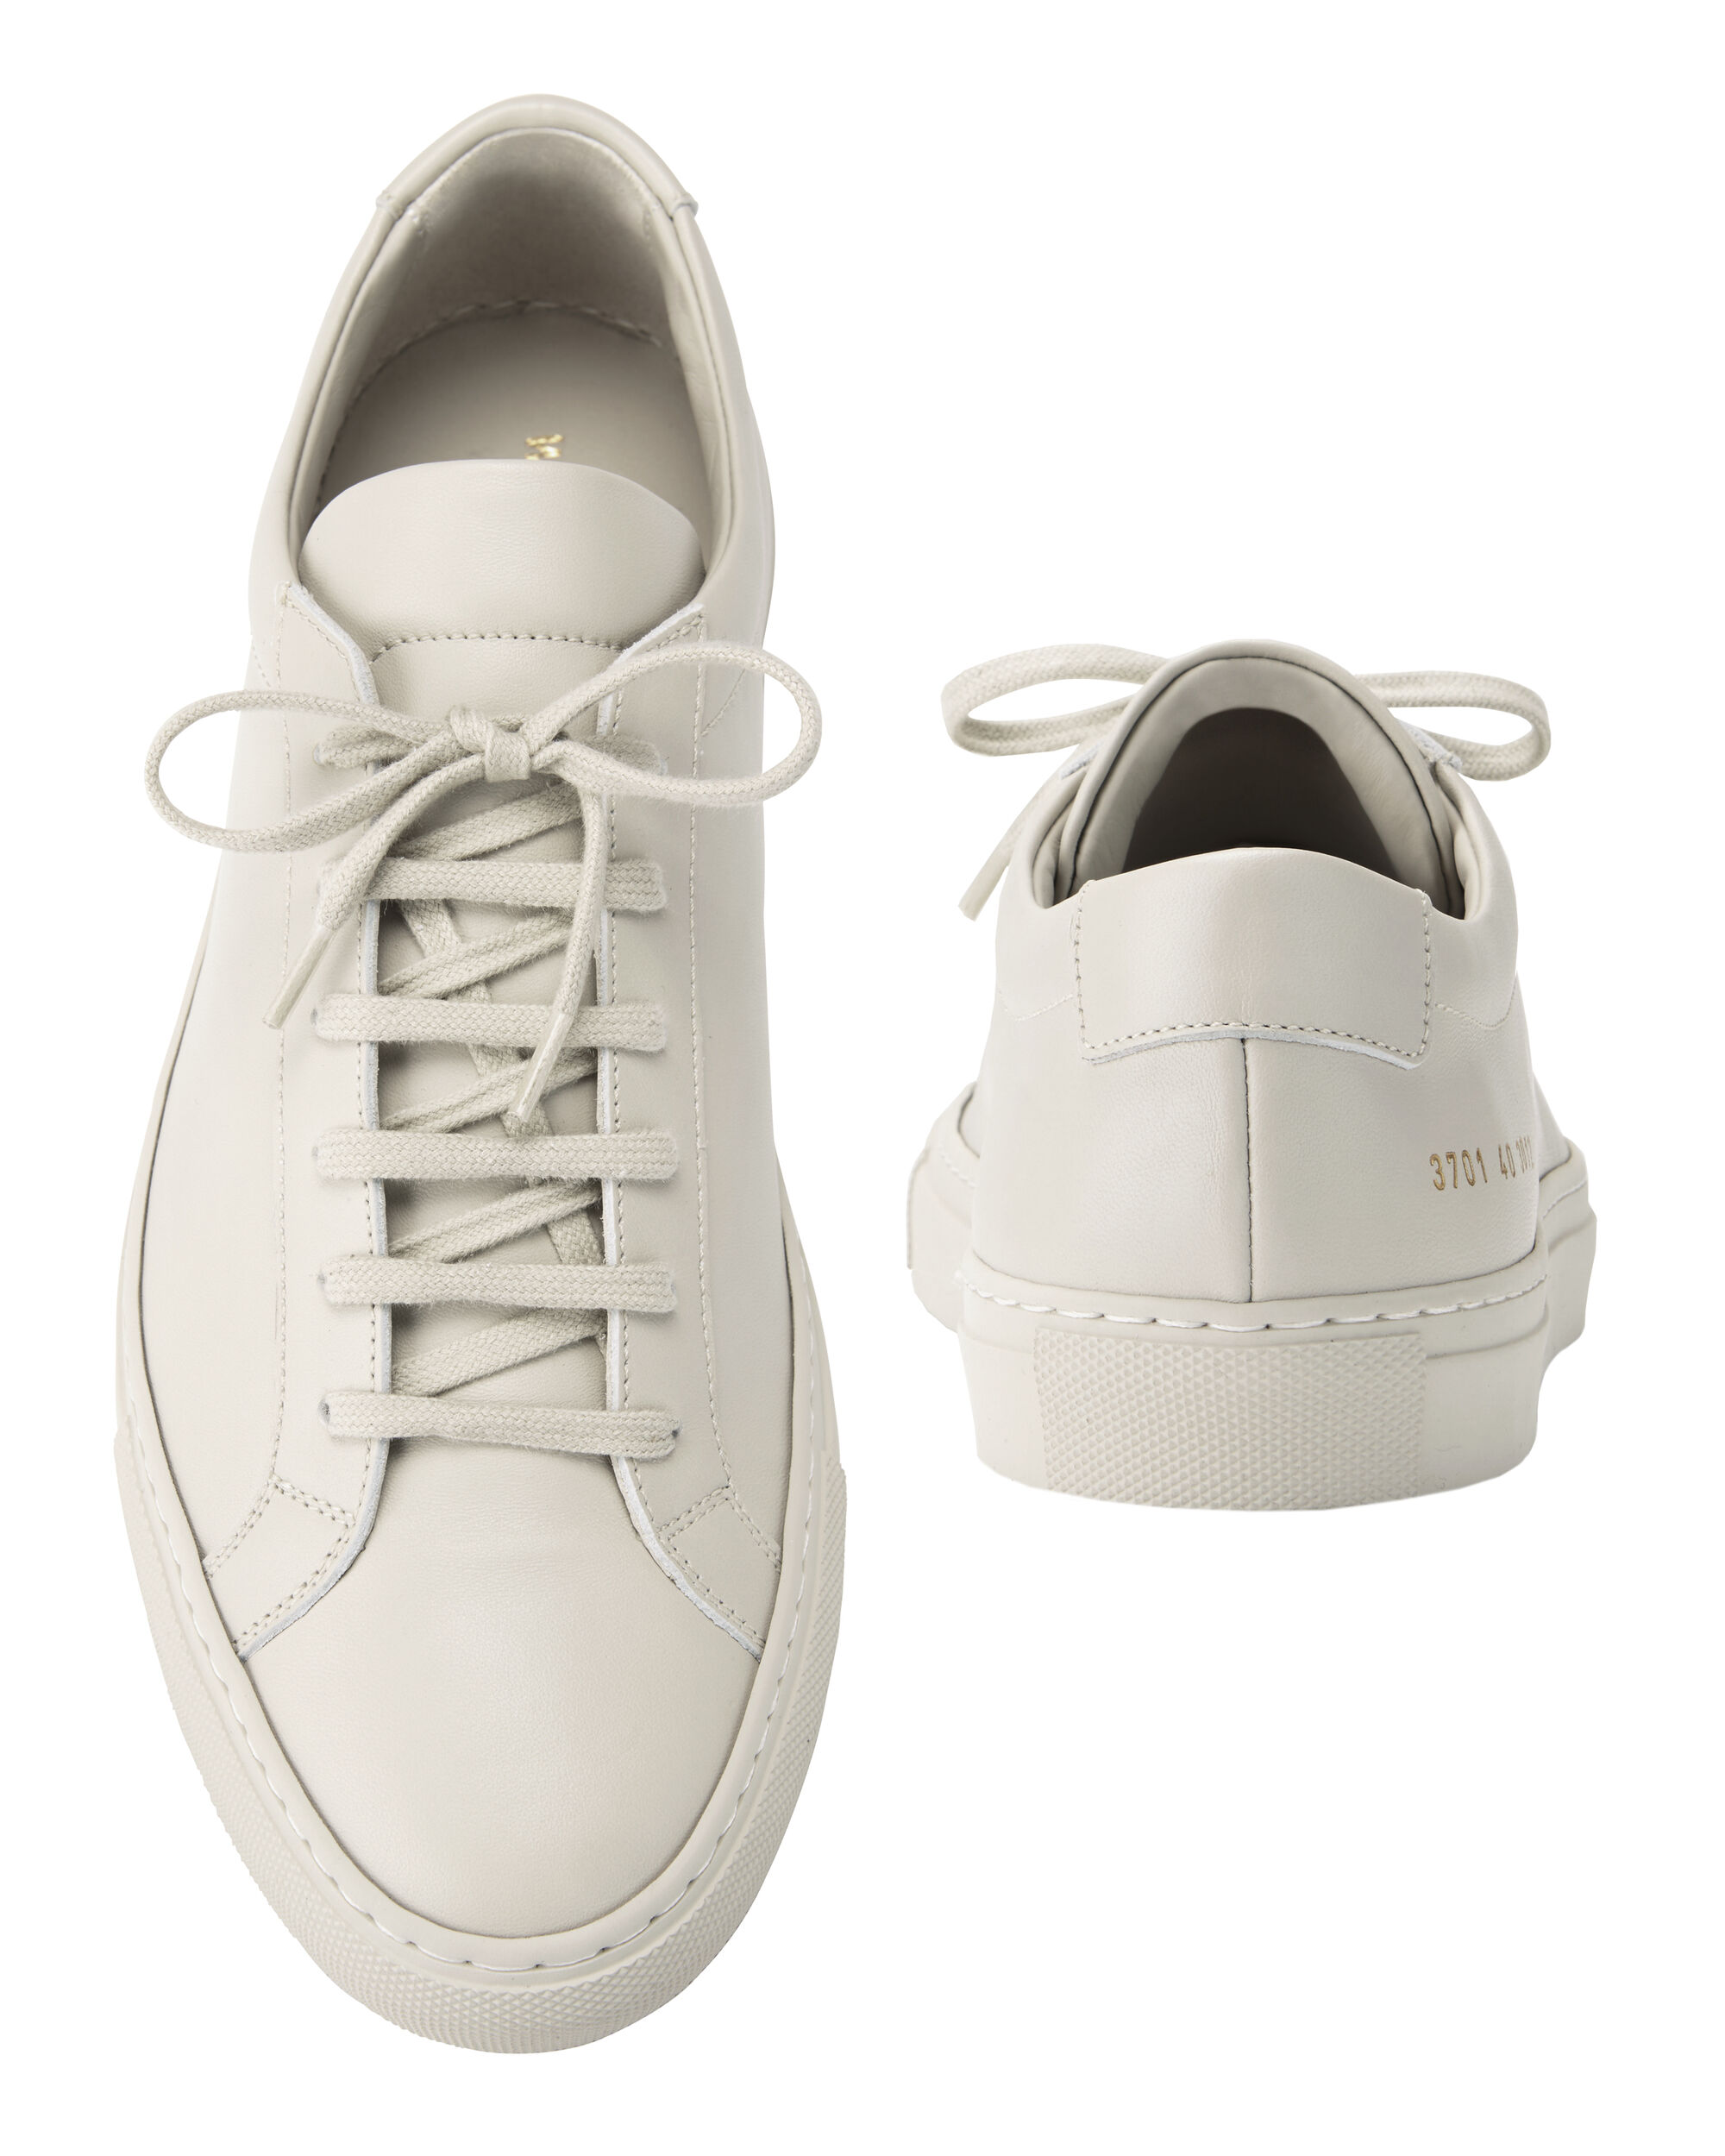 Achilles Low-Top Grey Leather Sneakers, GREY, hi-res